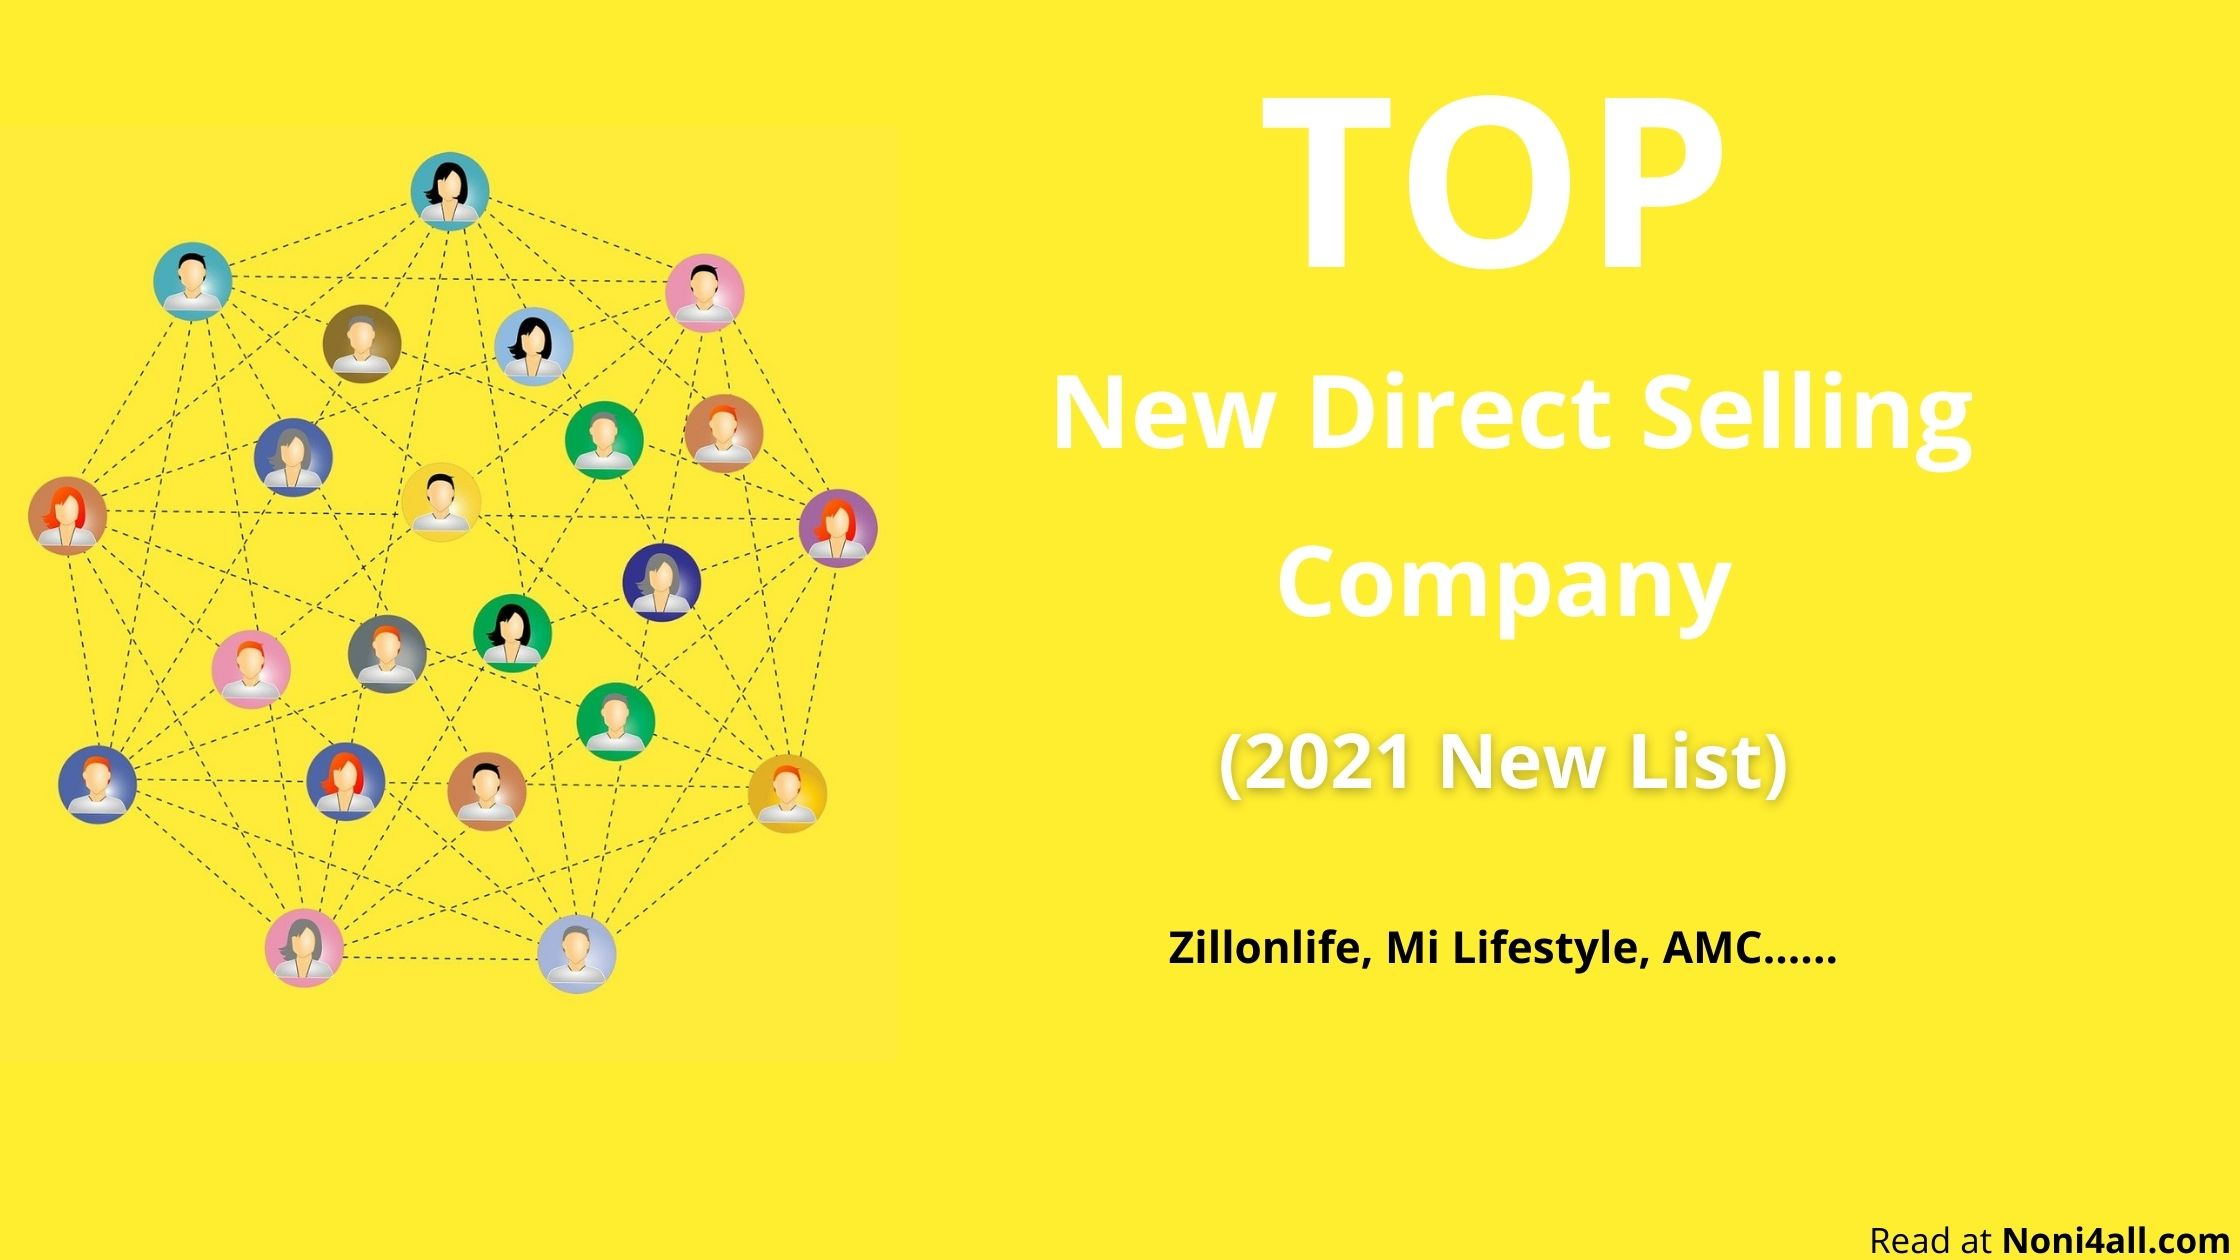 New Direct Selling Company